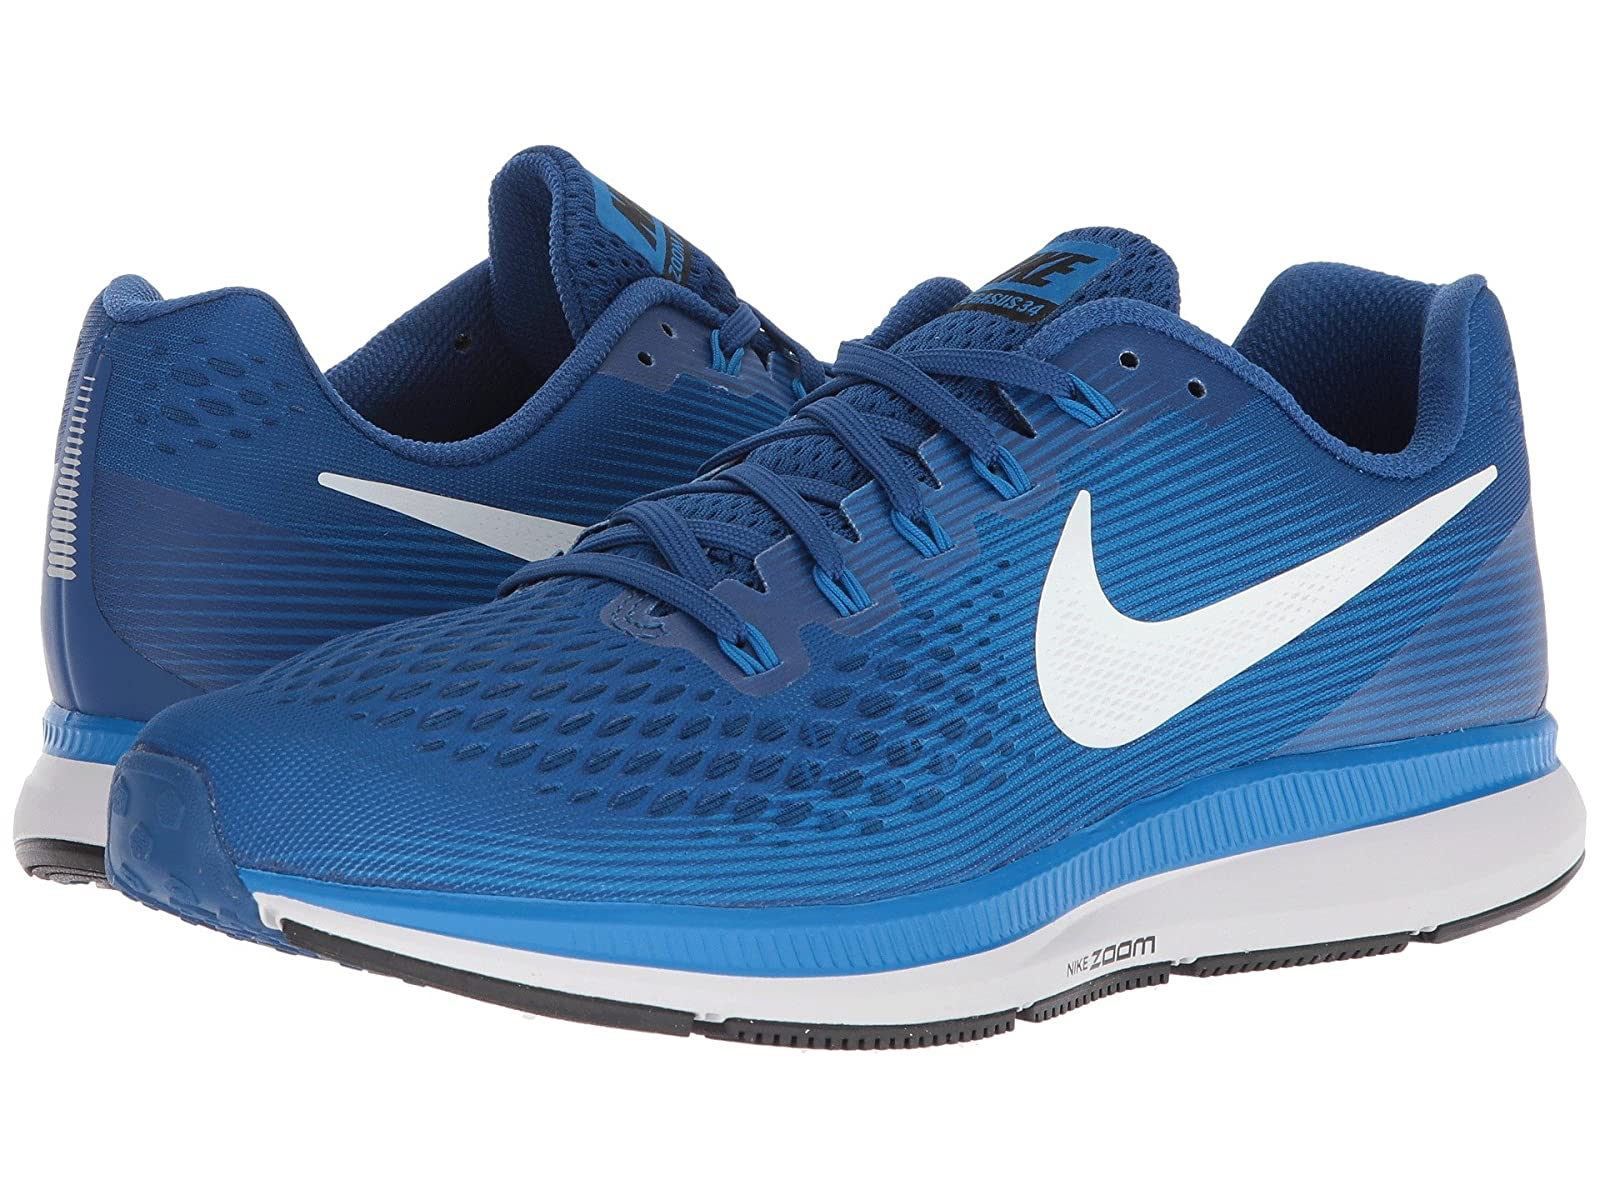 Nike Air Zoom Pegasus 34Cheap and distinctive eye-catching shoes